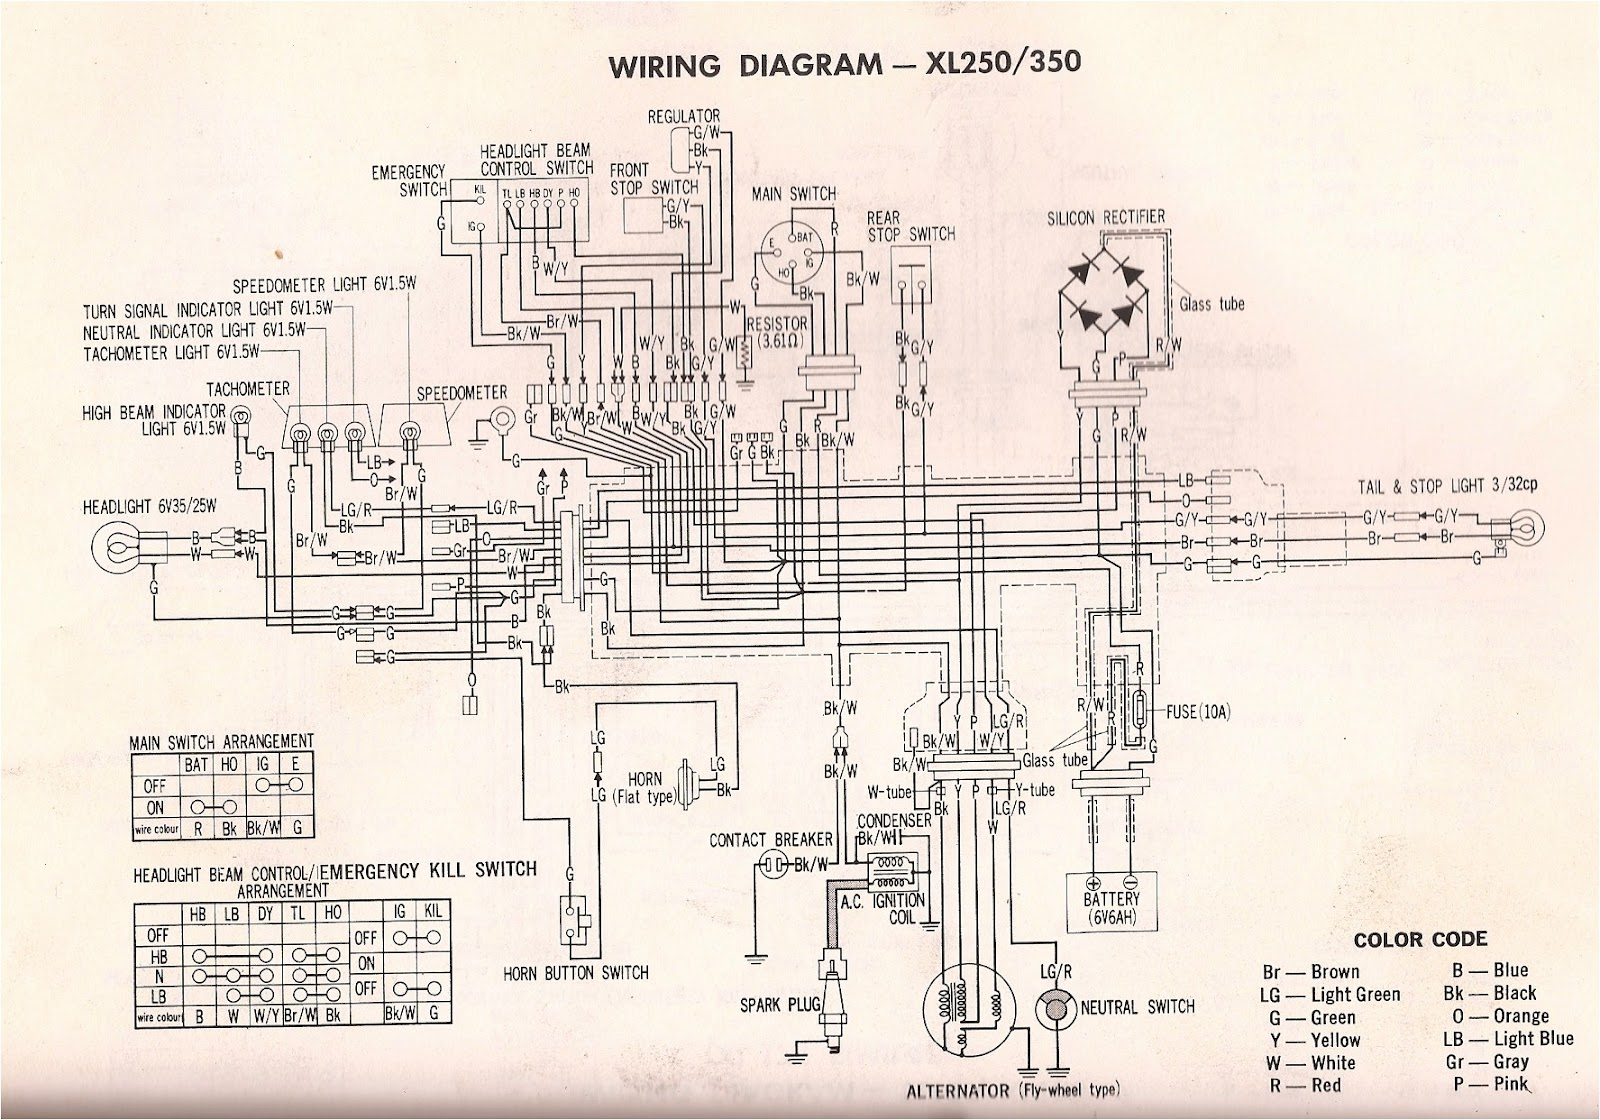 Honda Xl 125 Wiring Diagram Archive Of Automotive 125s 350 Schematics Rh Thyl Co Uk 1981 Xlr